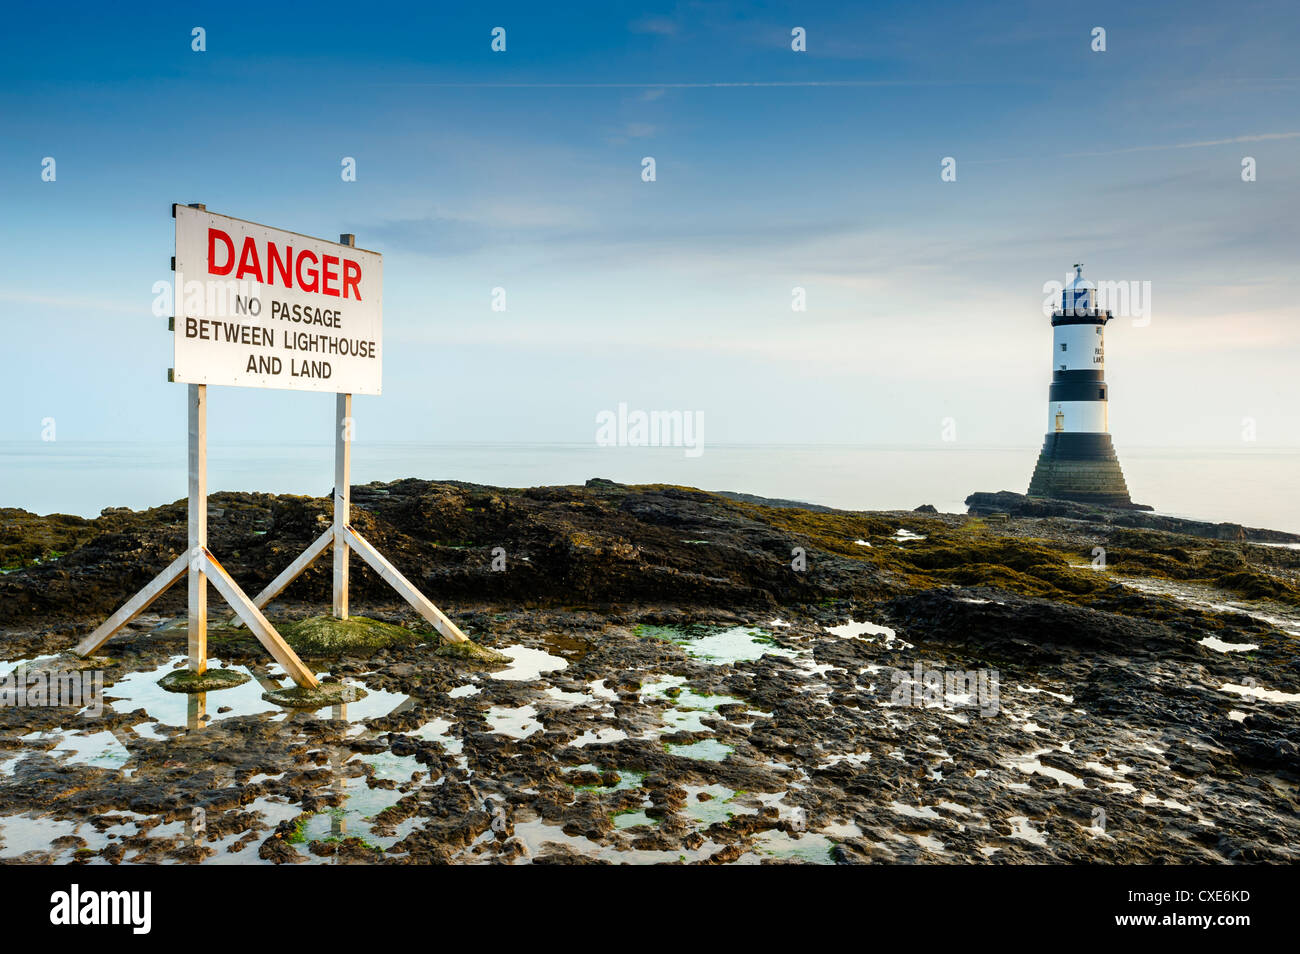 Warning sign at Penmon Lighthouse, Penmon Point, Anglesey, North Wales, Wales, United Kingdom, Europe - Stock Image